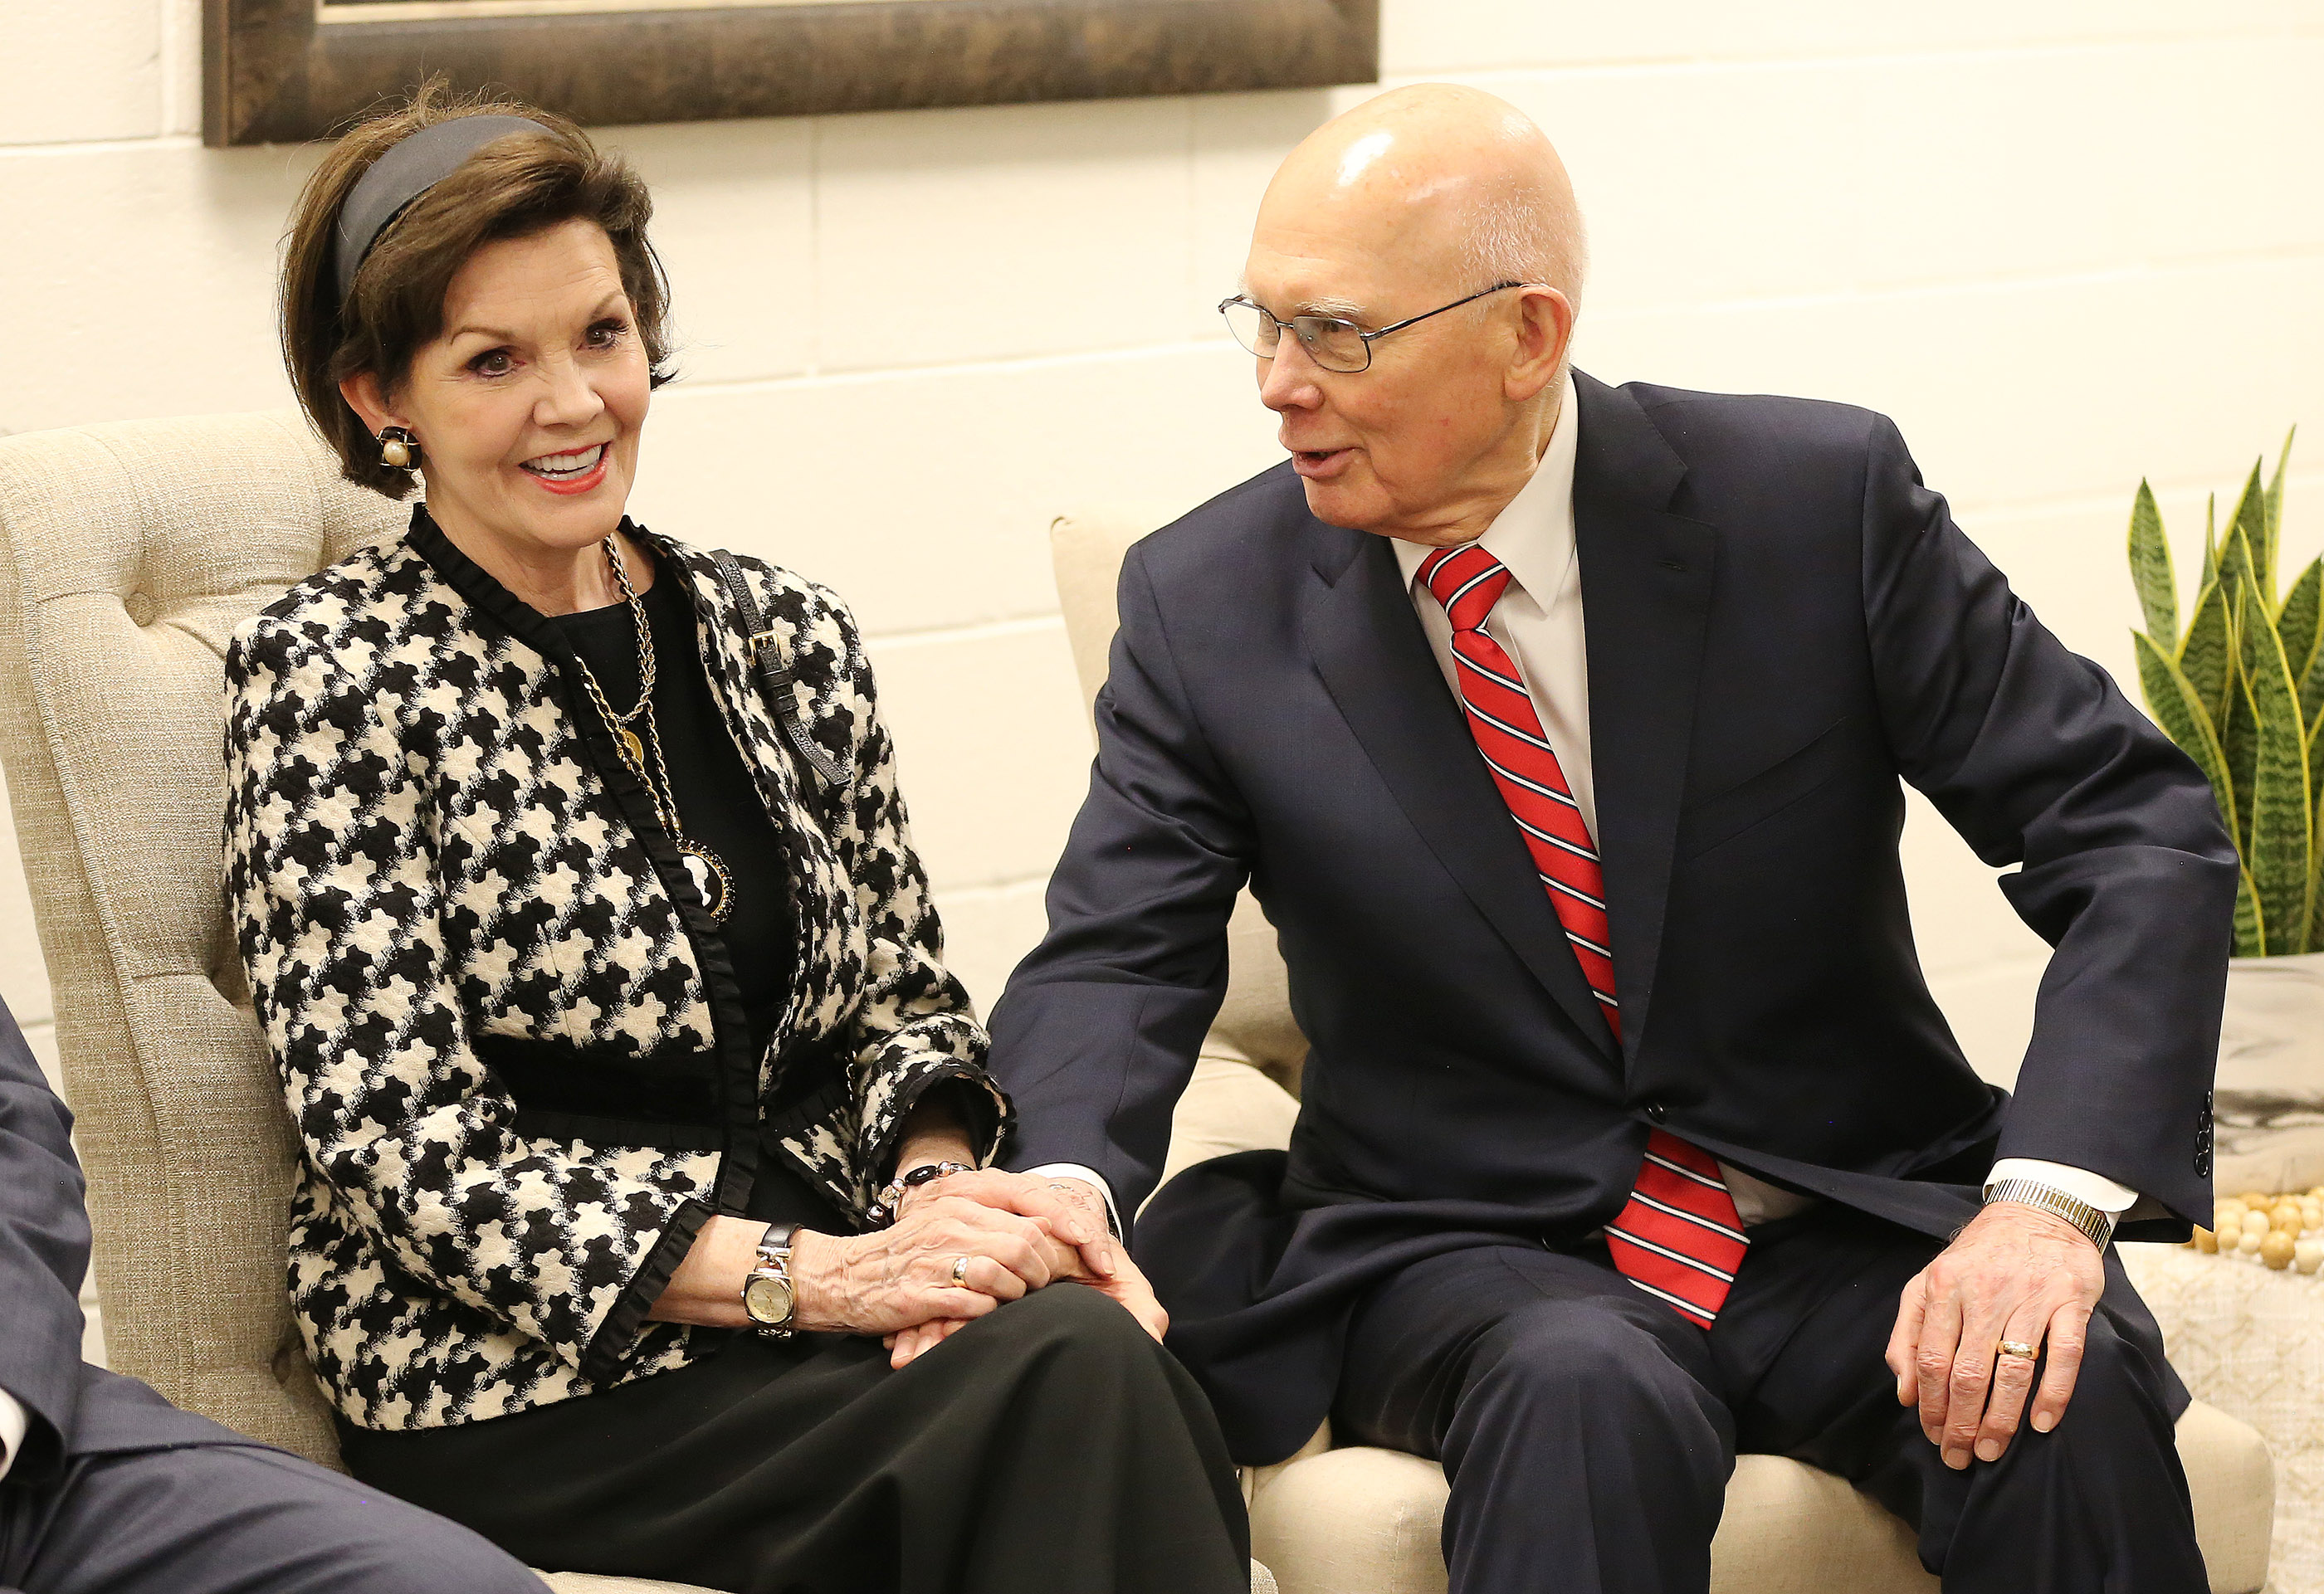 President Dallin H. Oaks, first counselor in the First Presidency of The Church of Jesus Christ of Latter-day Saints, speaks to 10 young single adults with his wife, Sister Kristen Oaks, prior to a devotional at the State Farm Stadium in Phoenix on Sunday, Feb. 10, 2019.